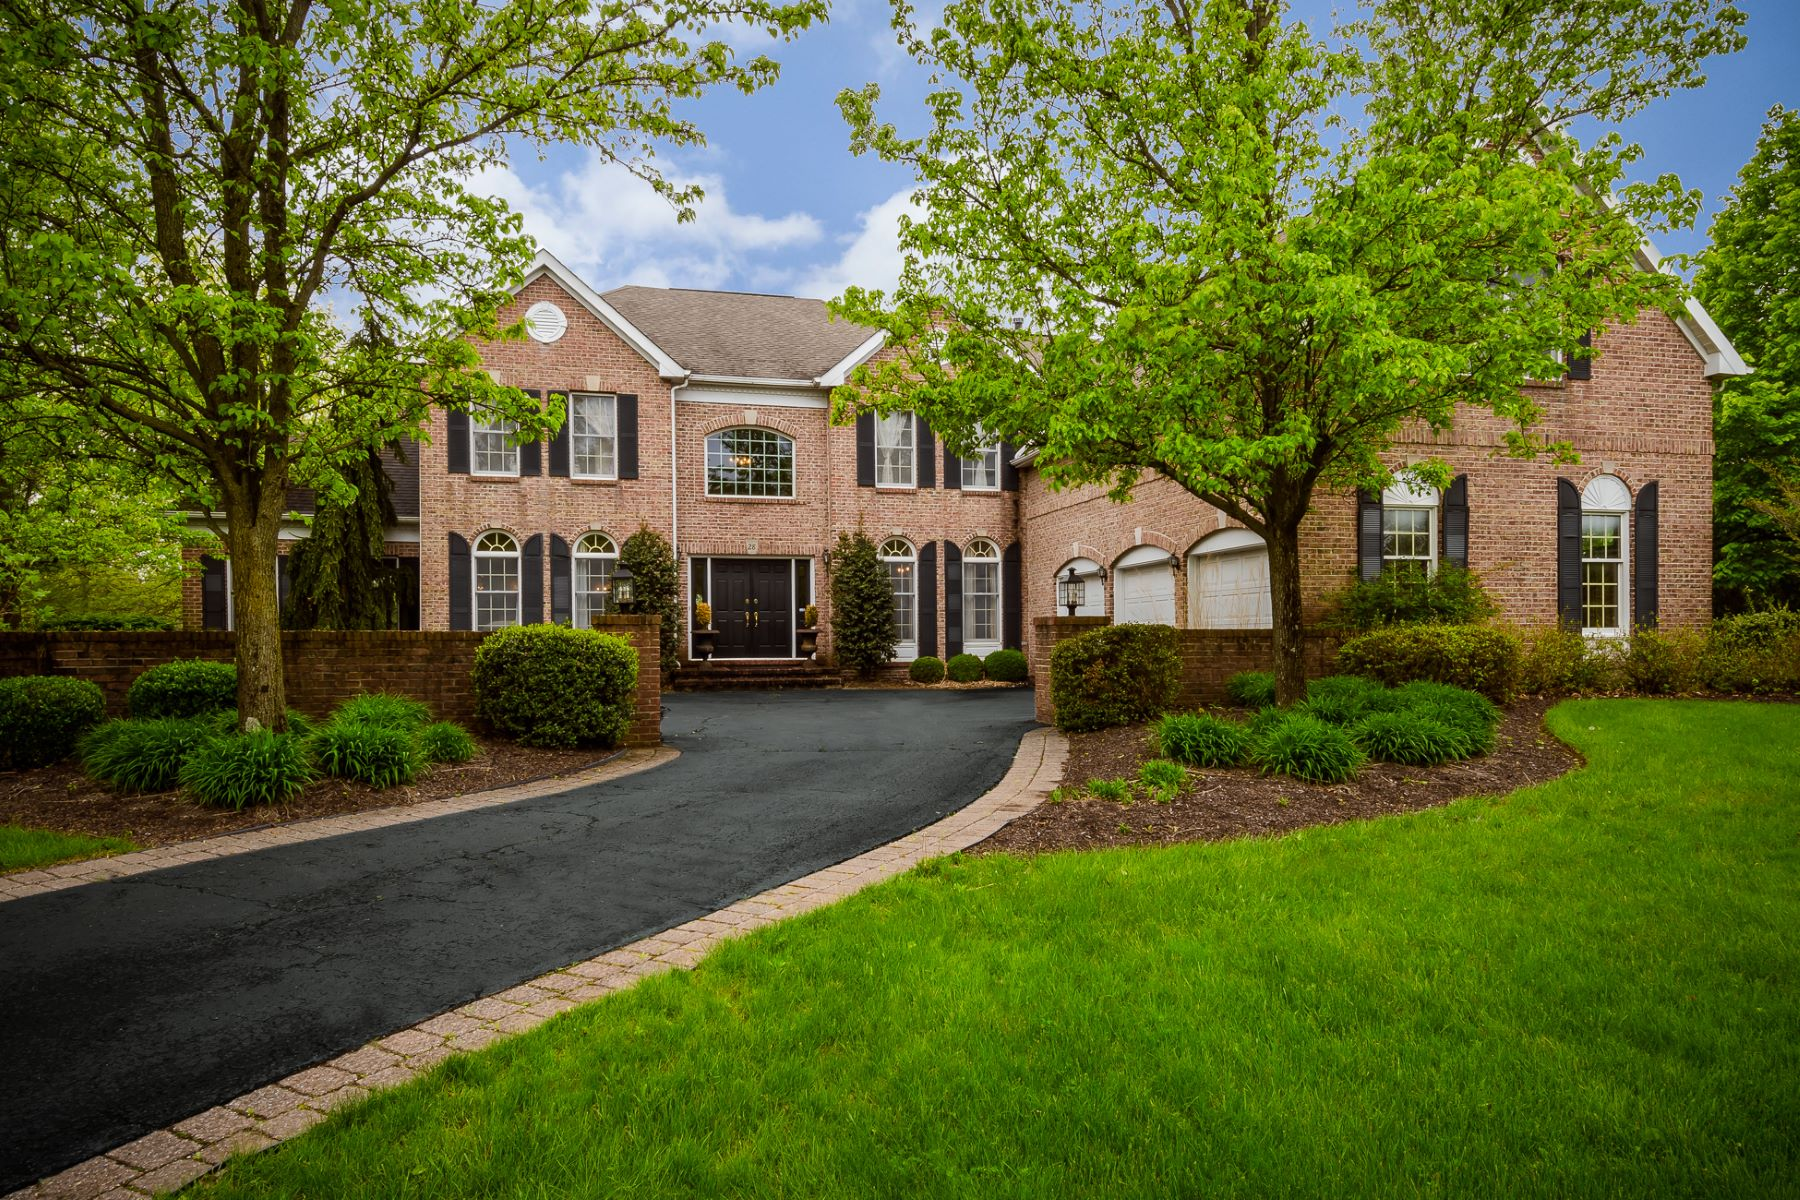 Additional photo for property listing at Nothing Short Of Exquisite in Bedens Brook Estates 28 Green Meadow Road, Skillman, New Jersey 08558 Stati Uniti